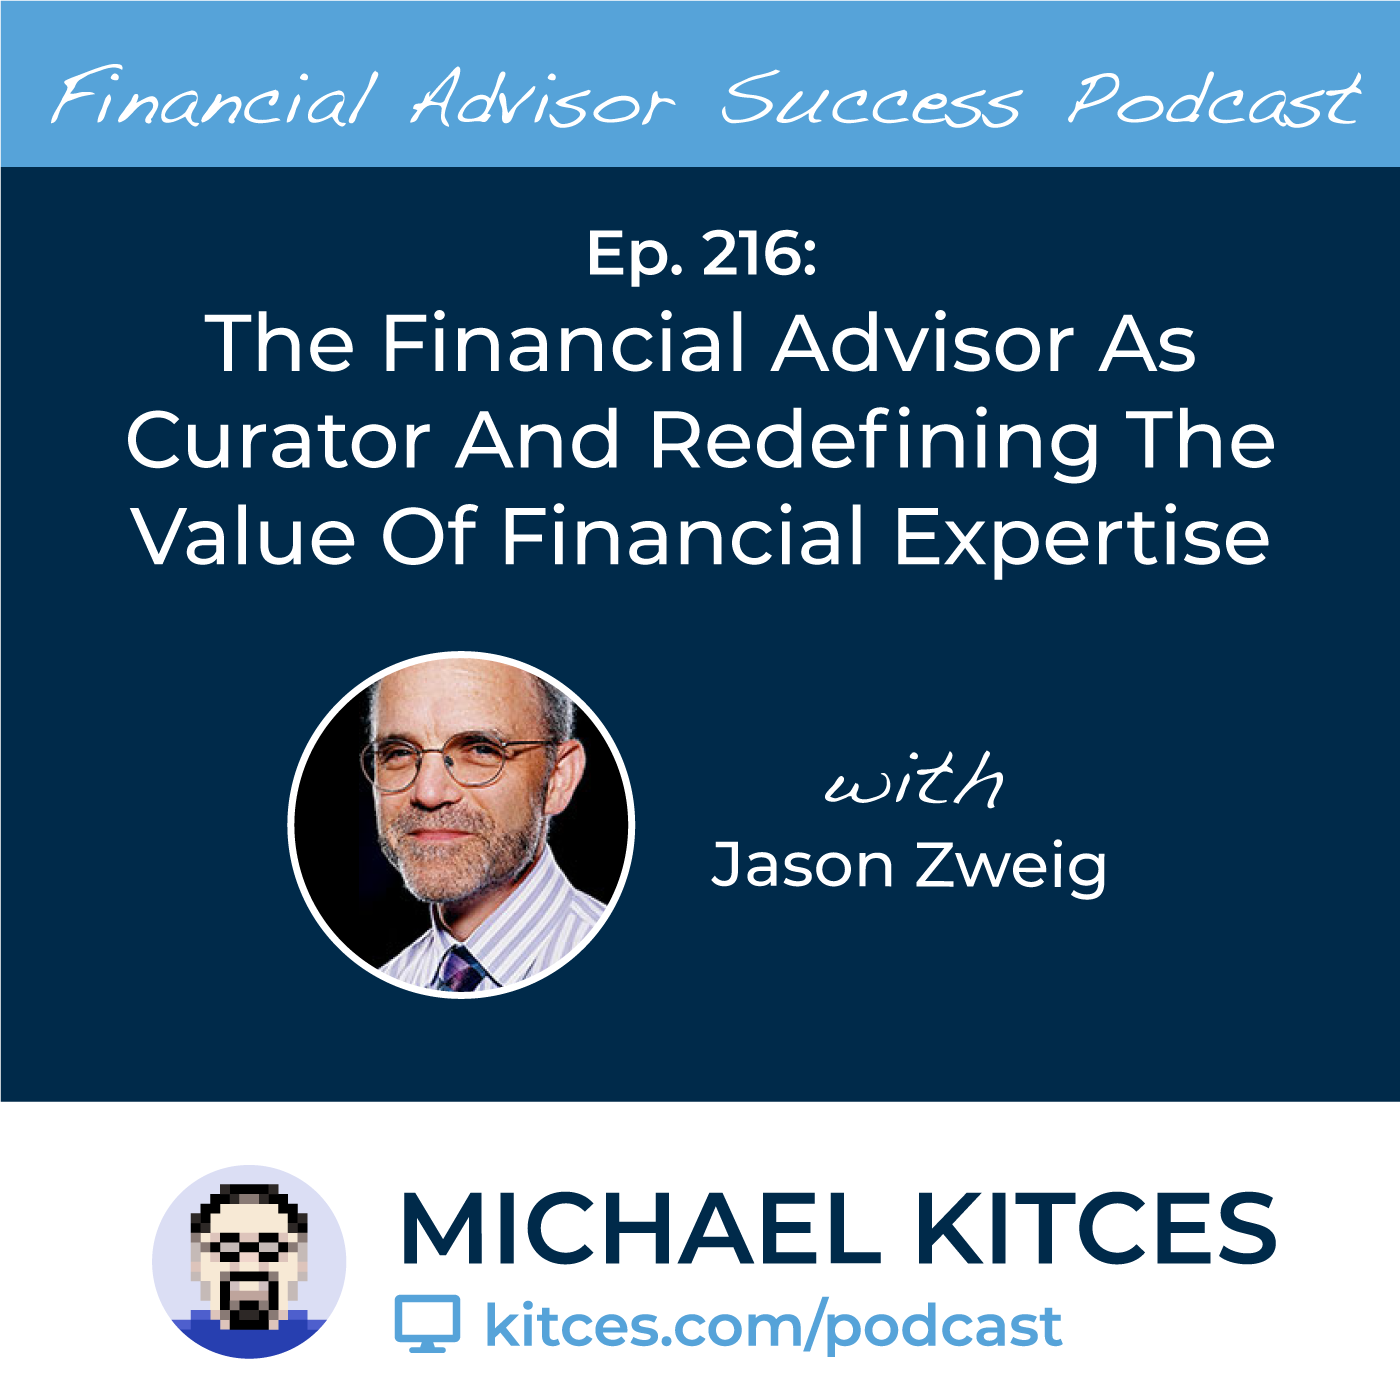 Ep 216: The Financial Advisor As Curator And Redefining The Value Of Financial Expertise with Jason Zweig